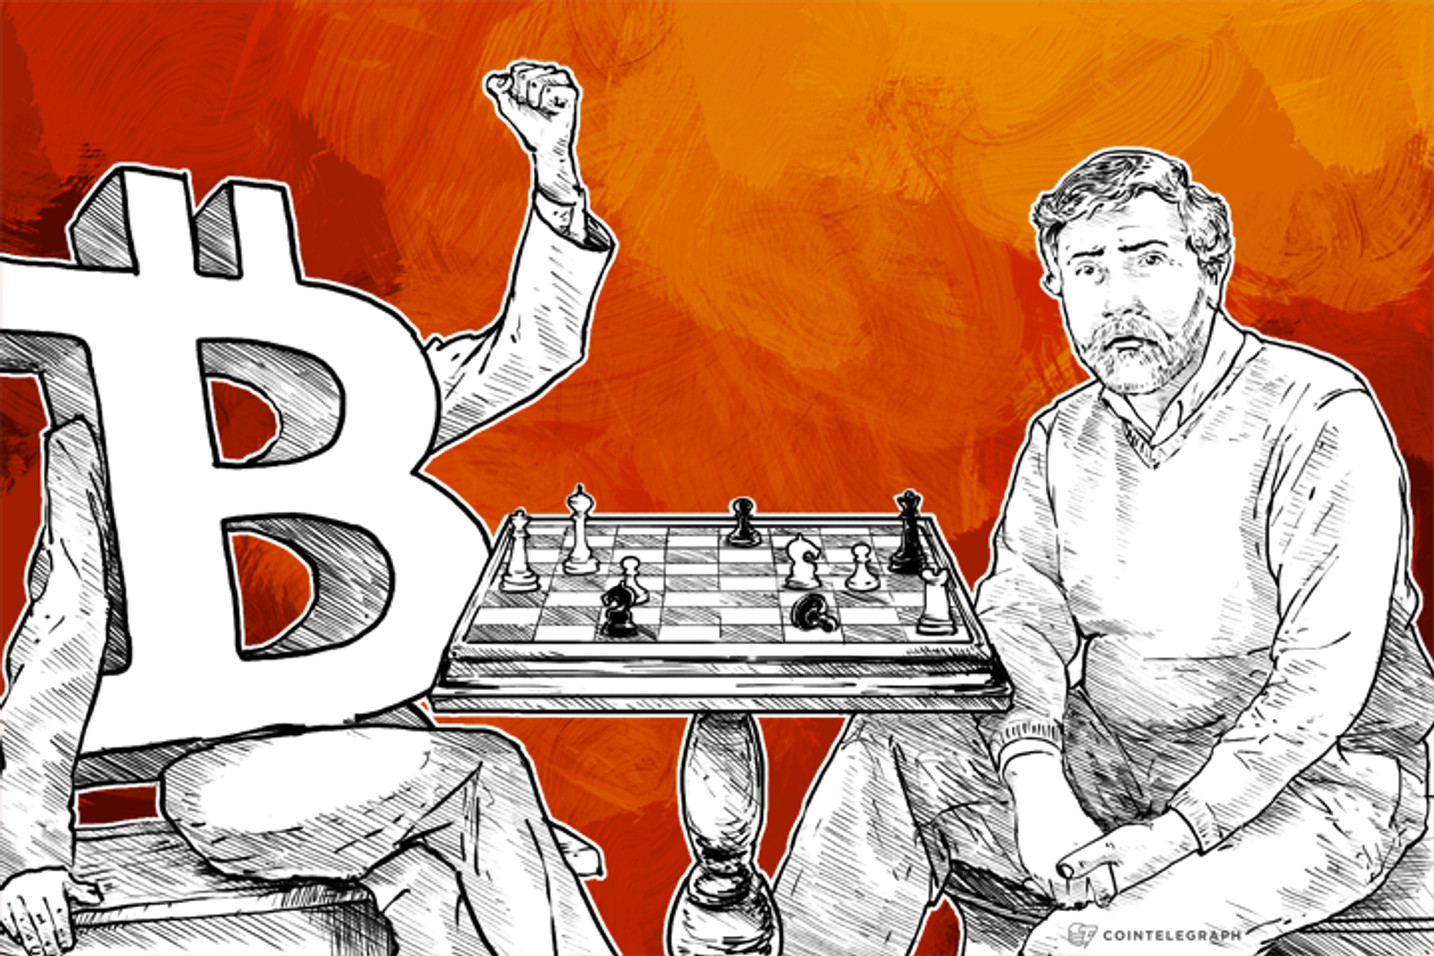 Op-Ed: Paul Krugman is Wrong - Bitcoin Has Been a Stable Store of Value for over Half a Decade